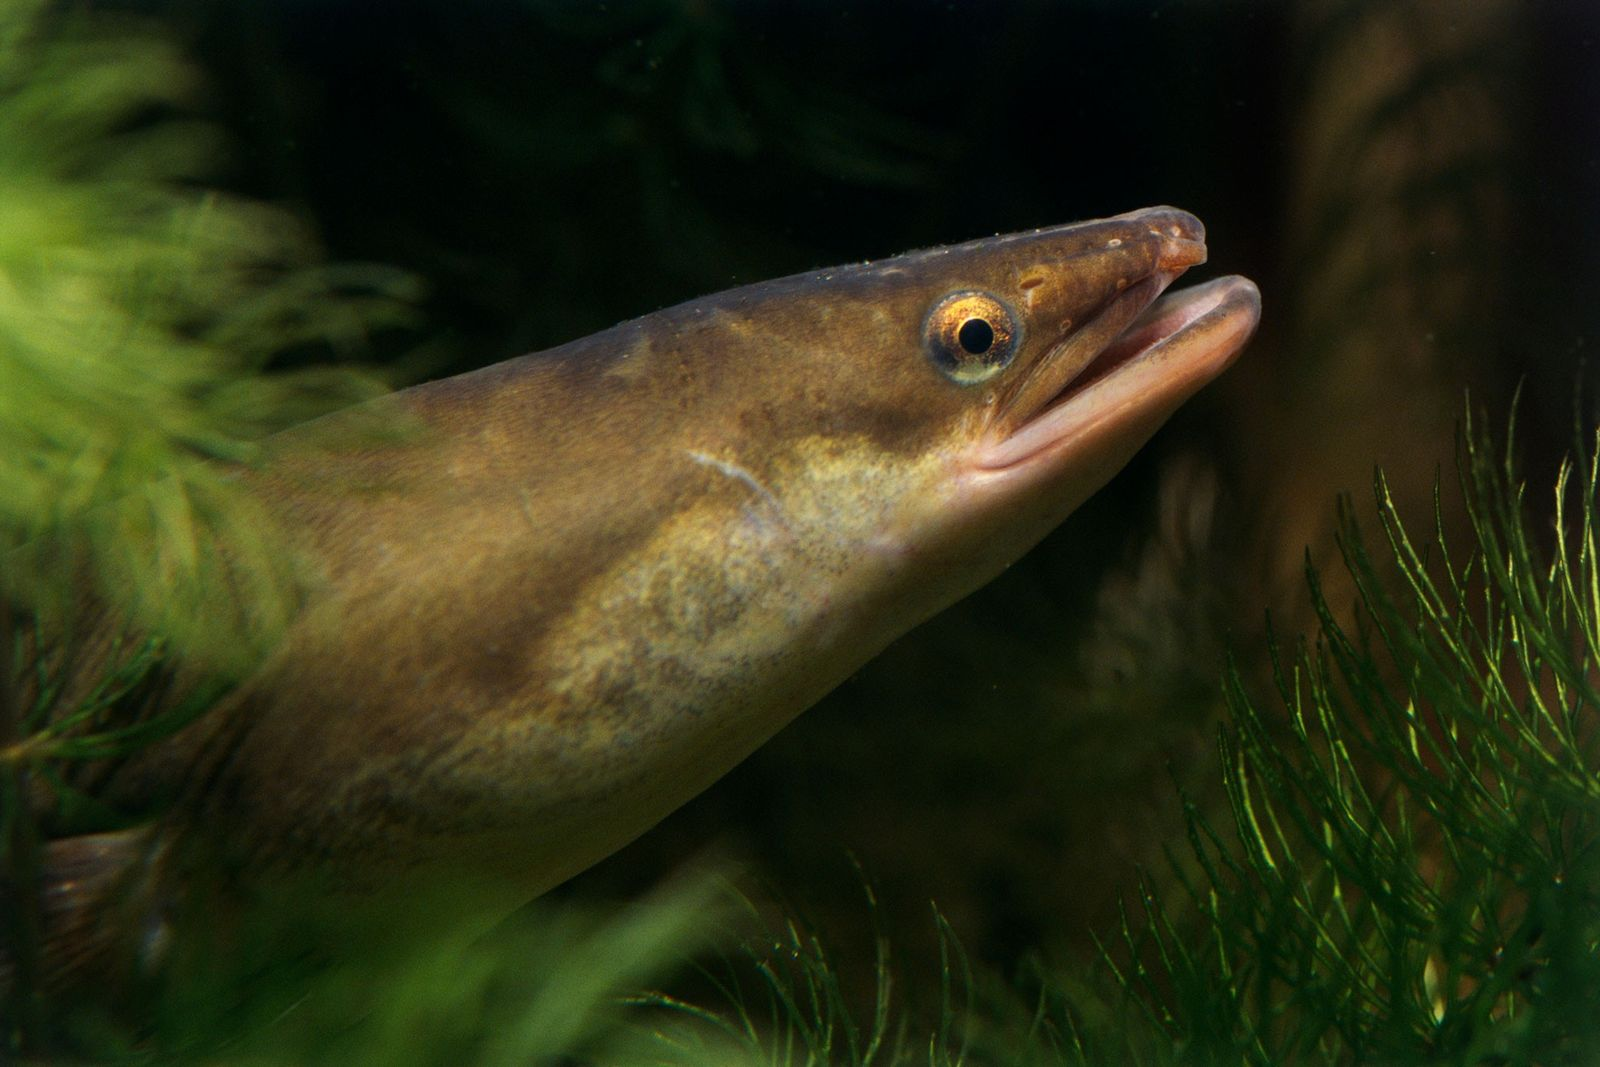 Some European Rivers Are So Drug-Polluted, Their Eels Get High on Cocaine